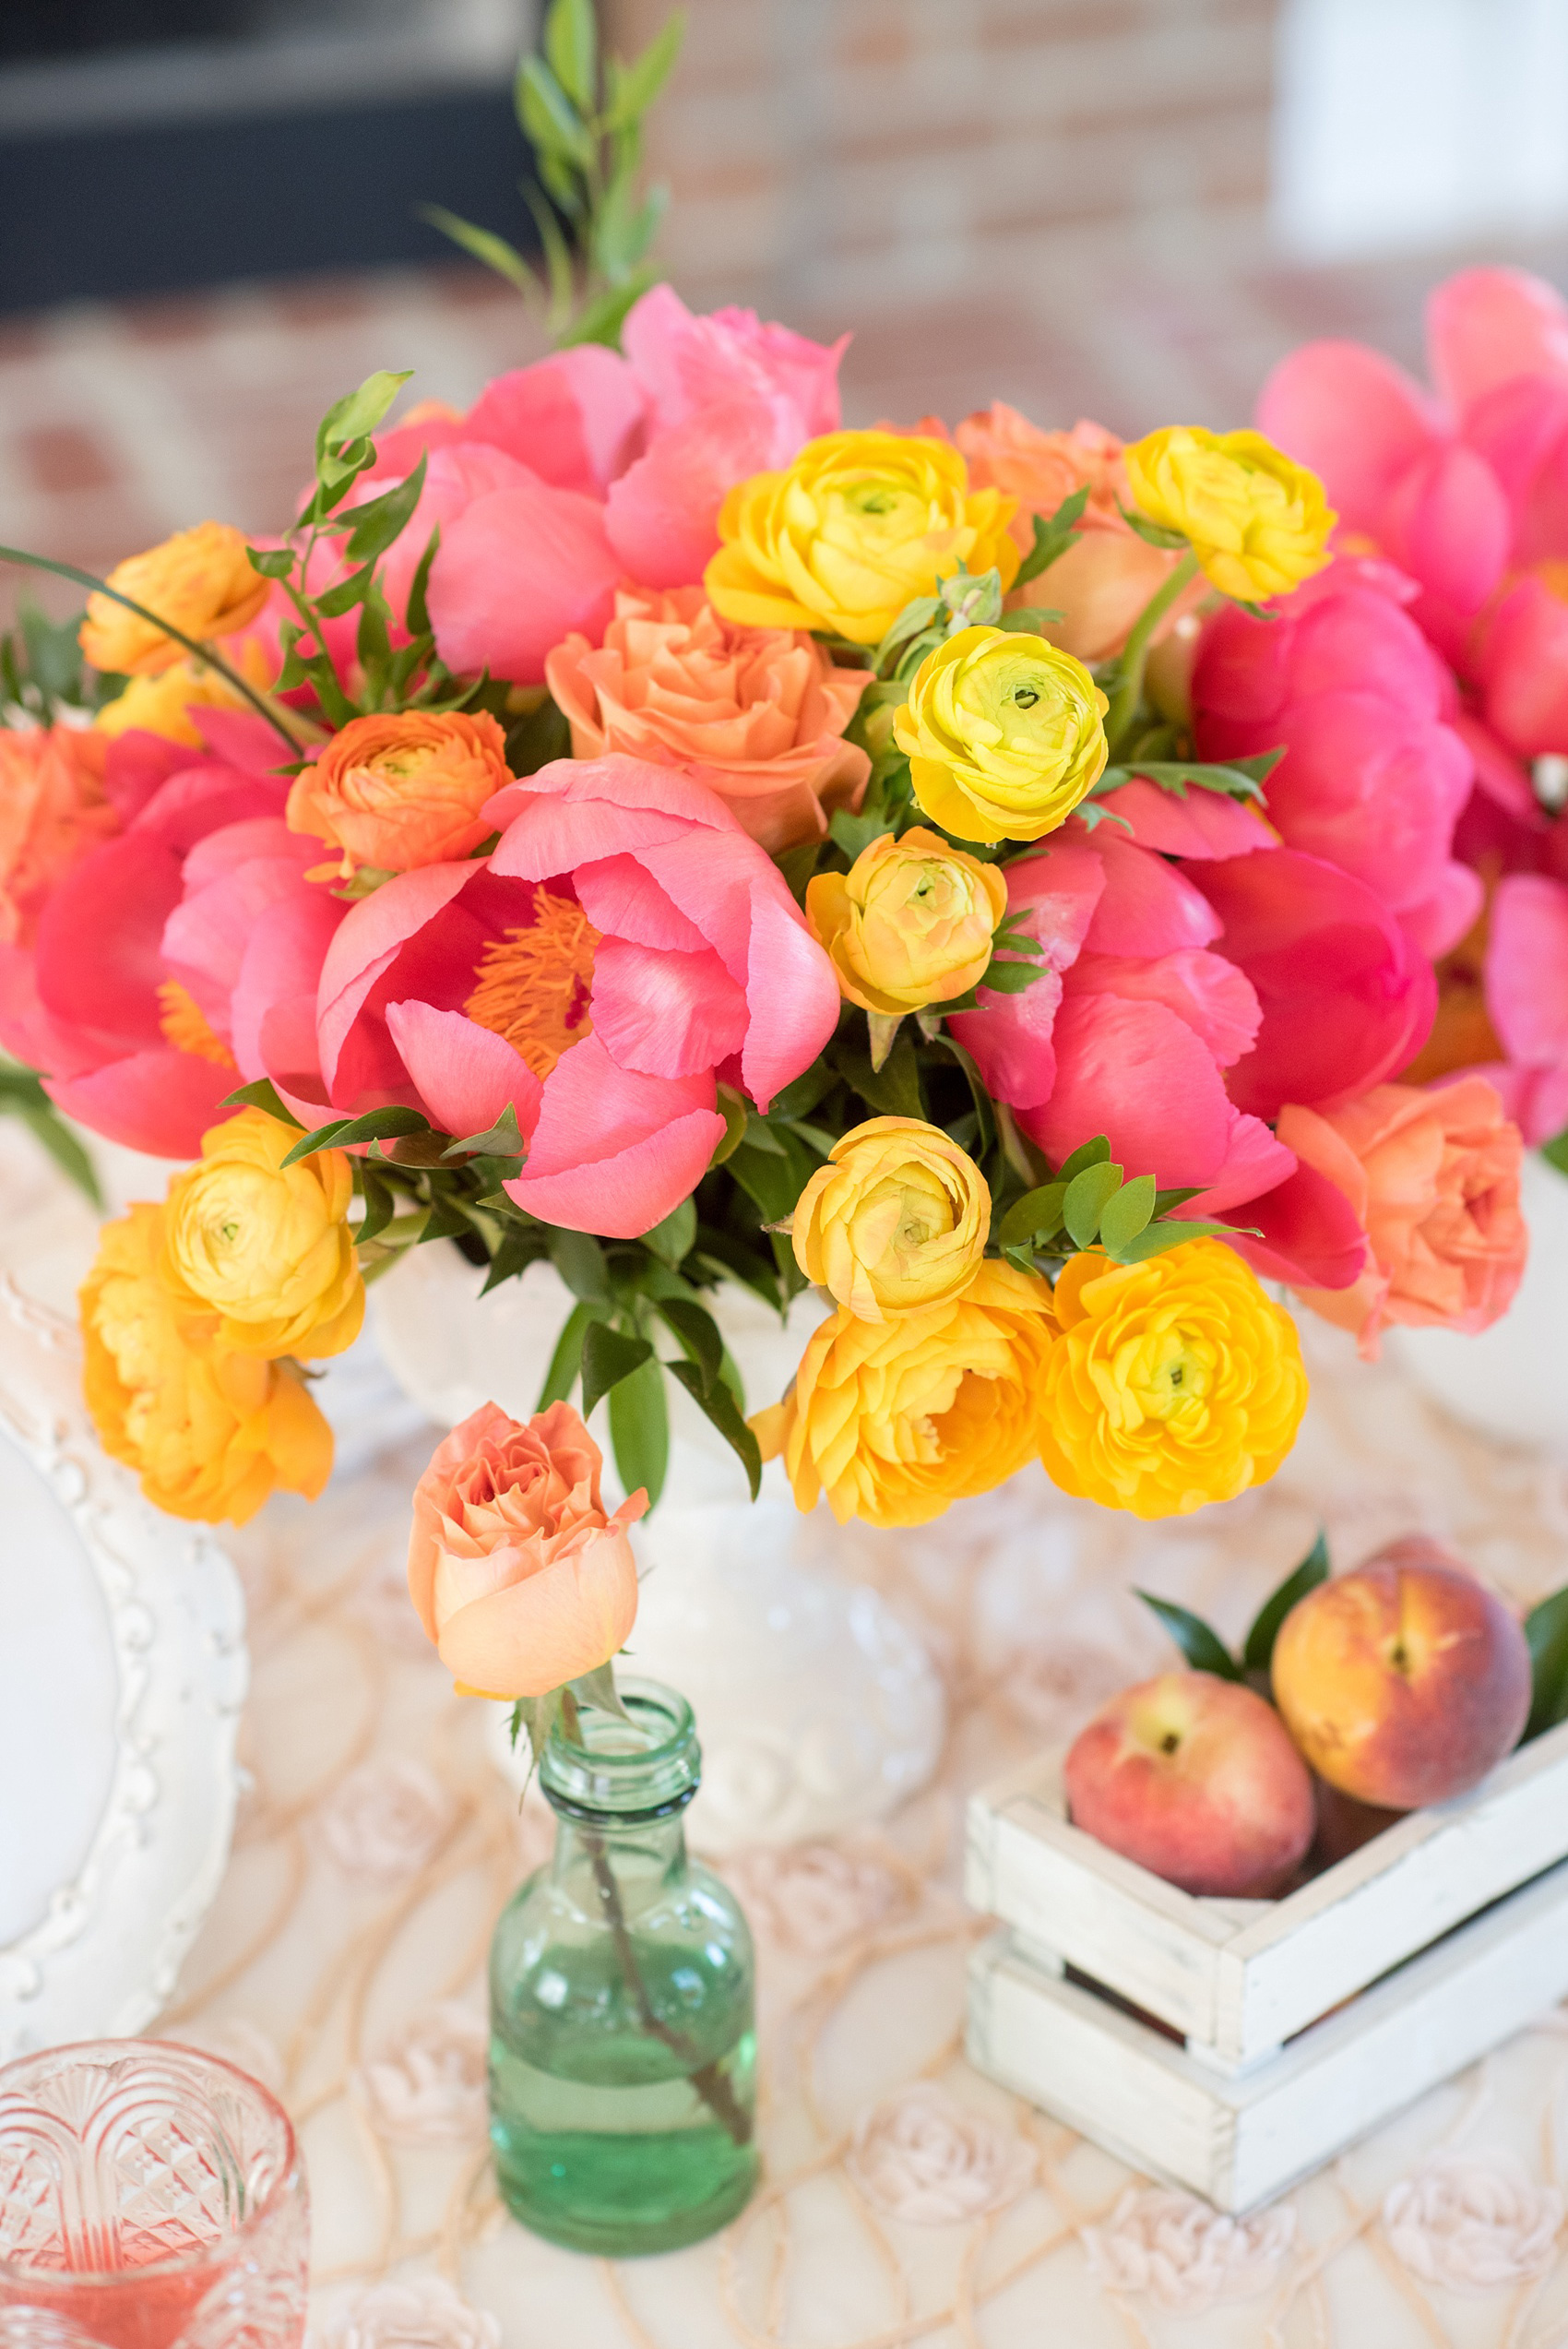 Mikkel Paige Photography wedding photo at The Bradford, NC. Modern pink, black and white table setup. Peonies and ranunculus and shabby chic peach holders.